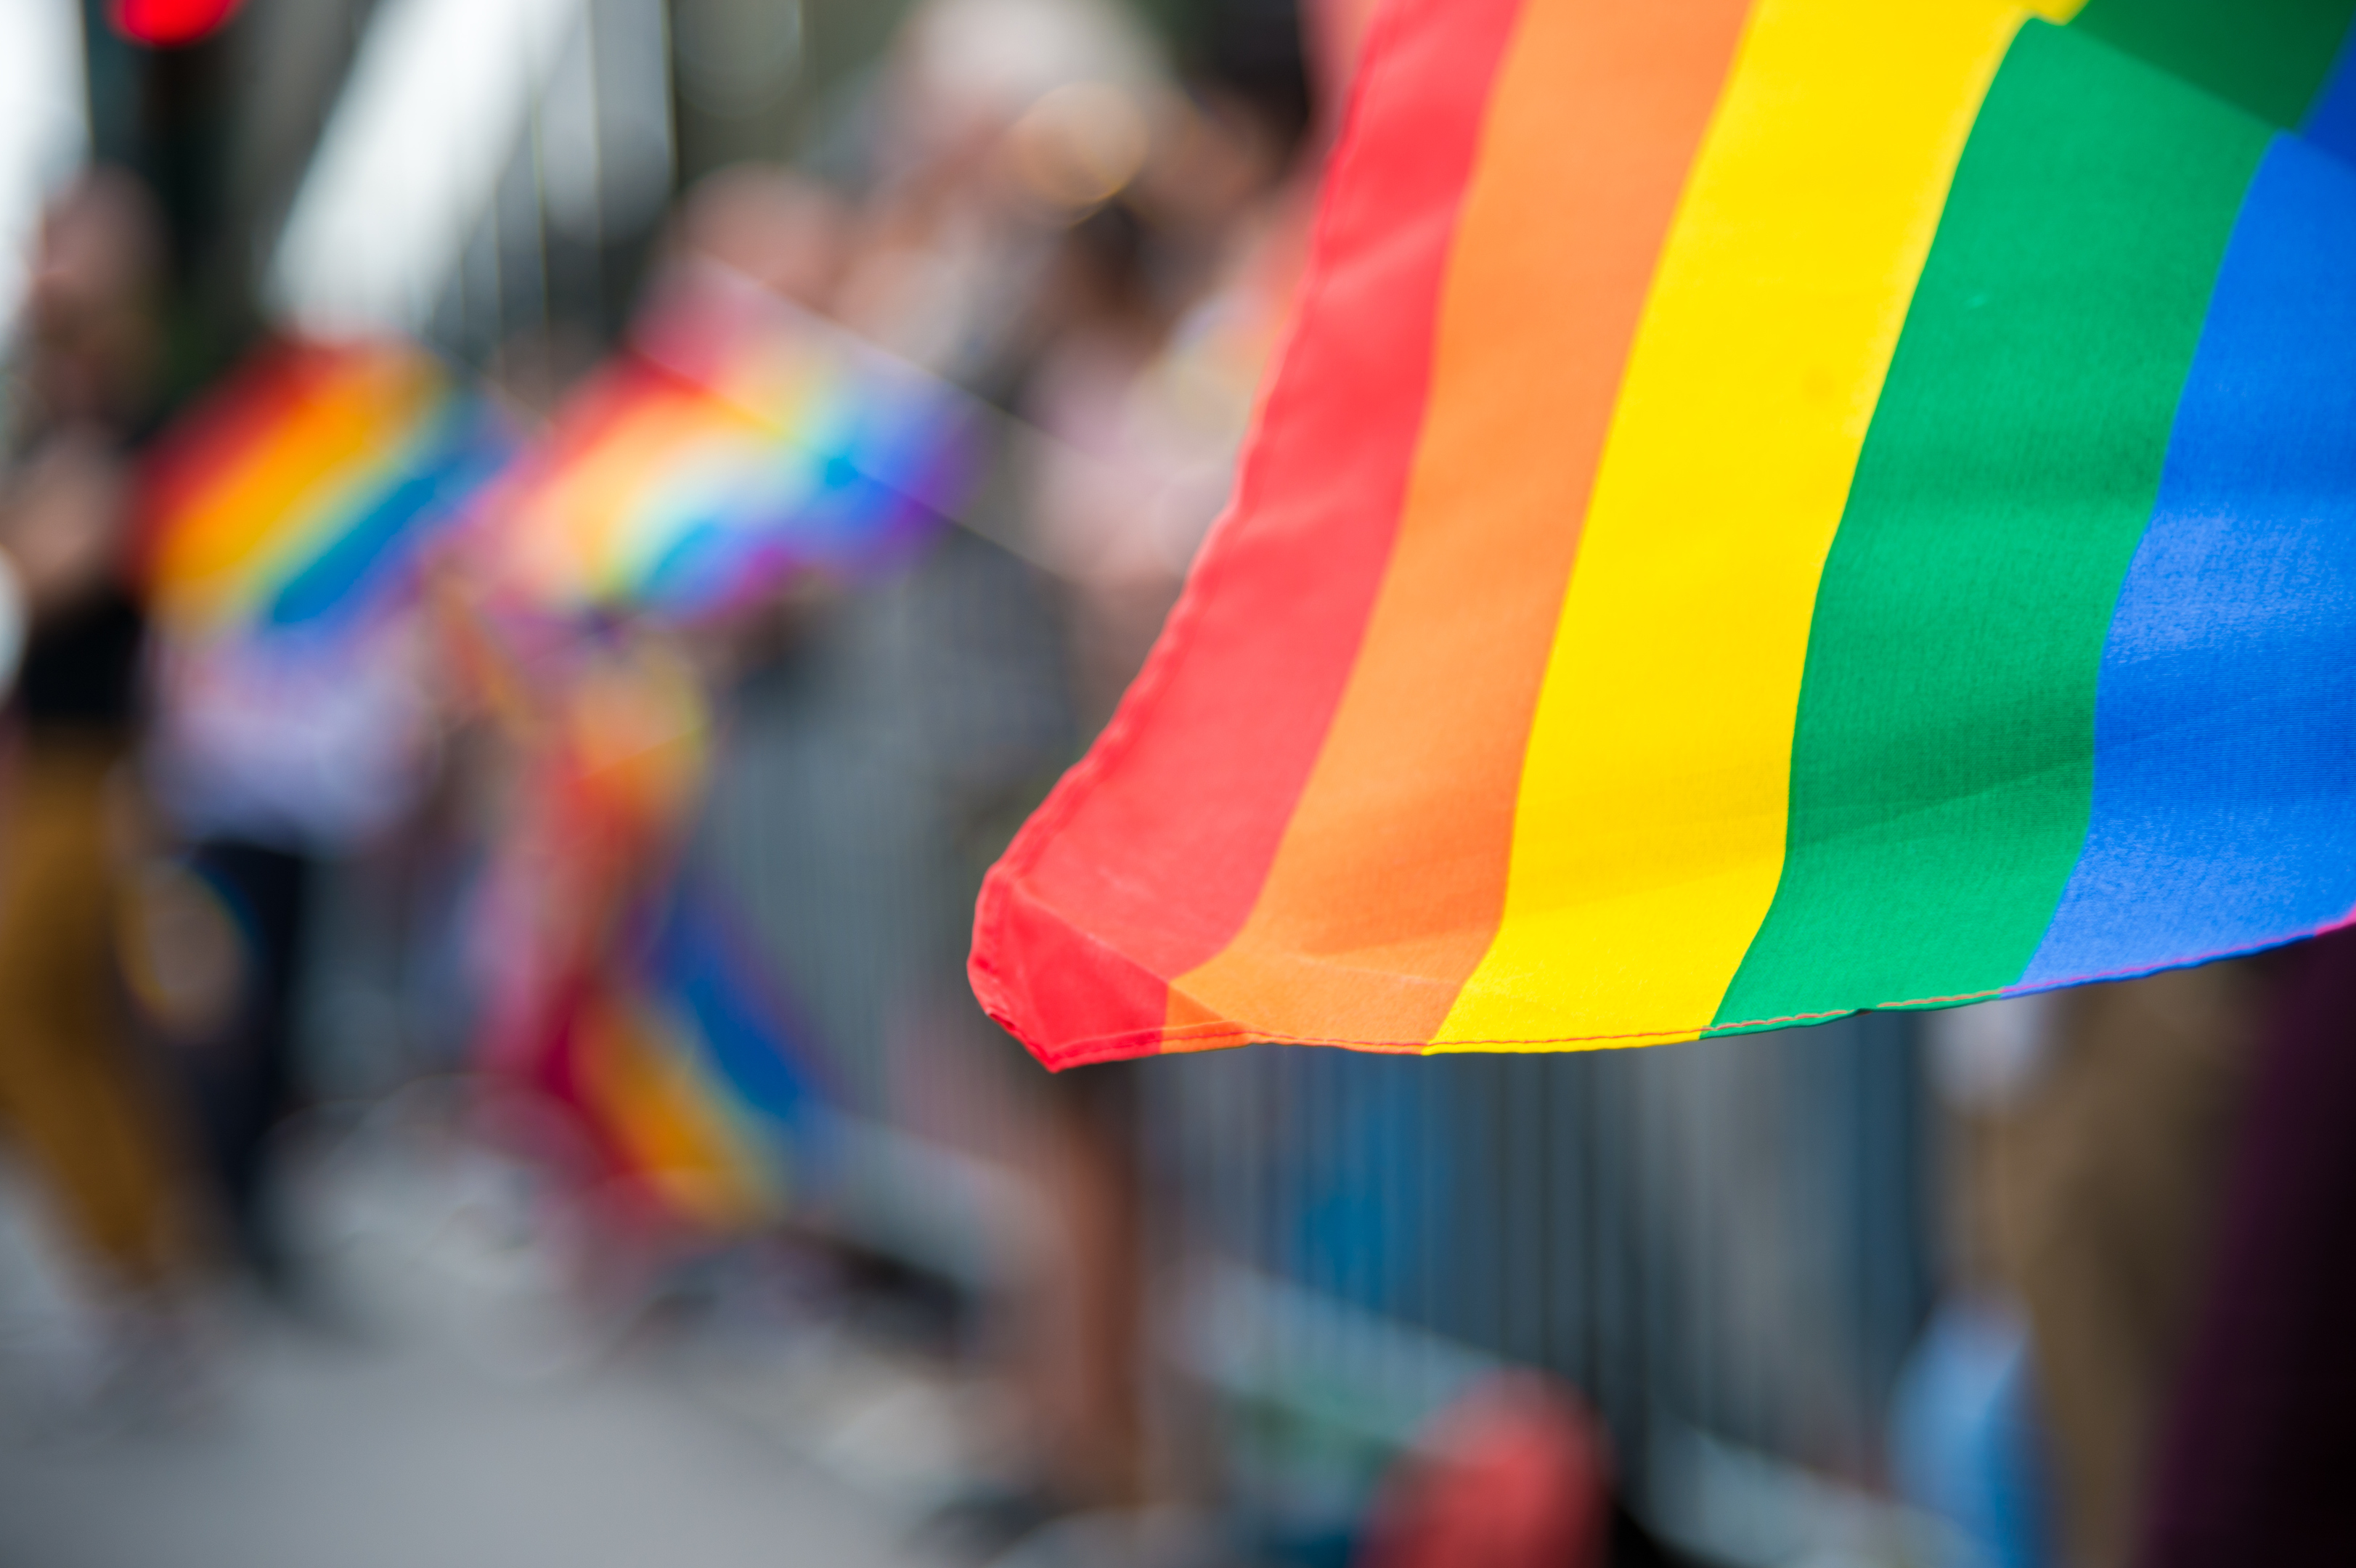 The LGBT rainbow flag contradicts the council's flag policy